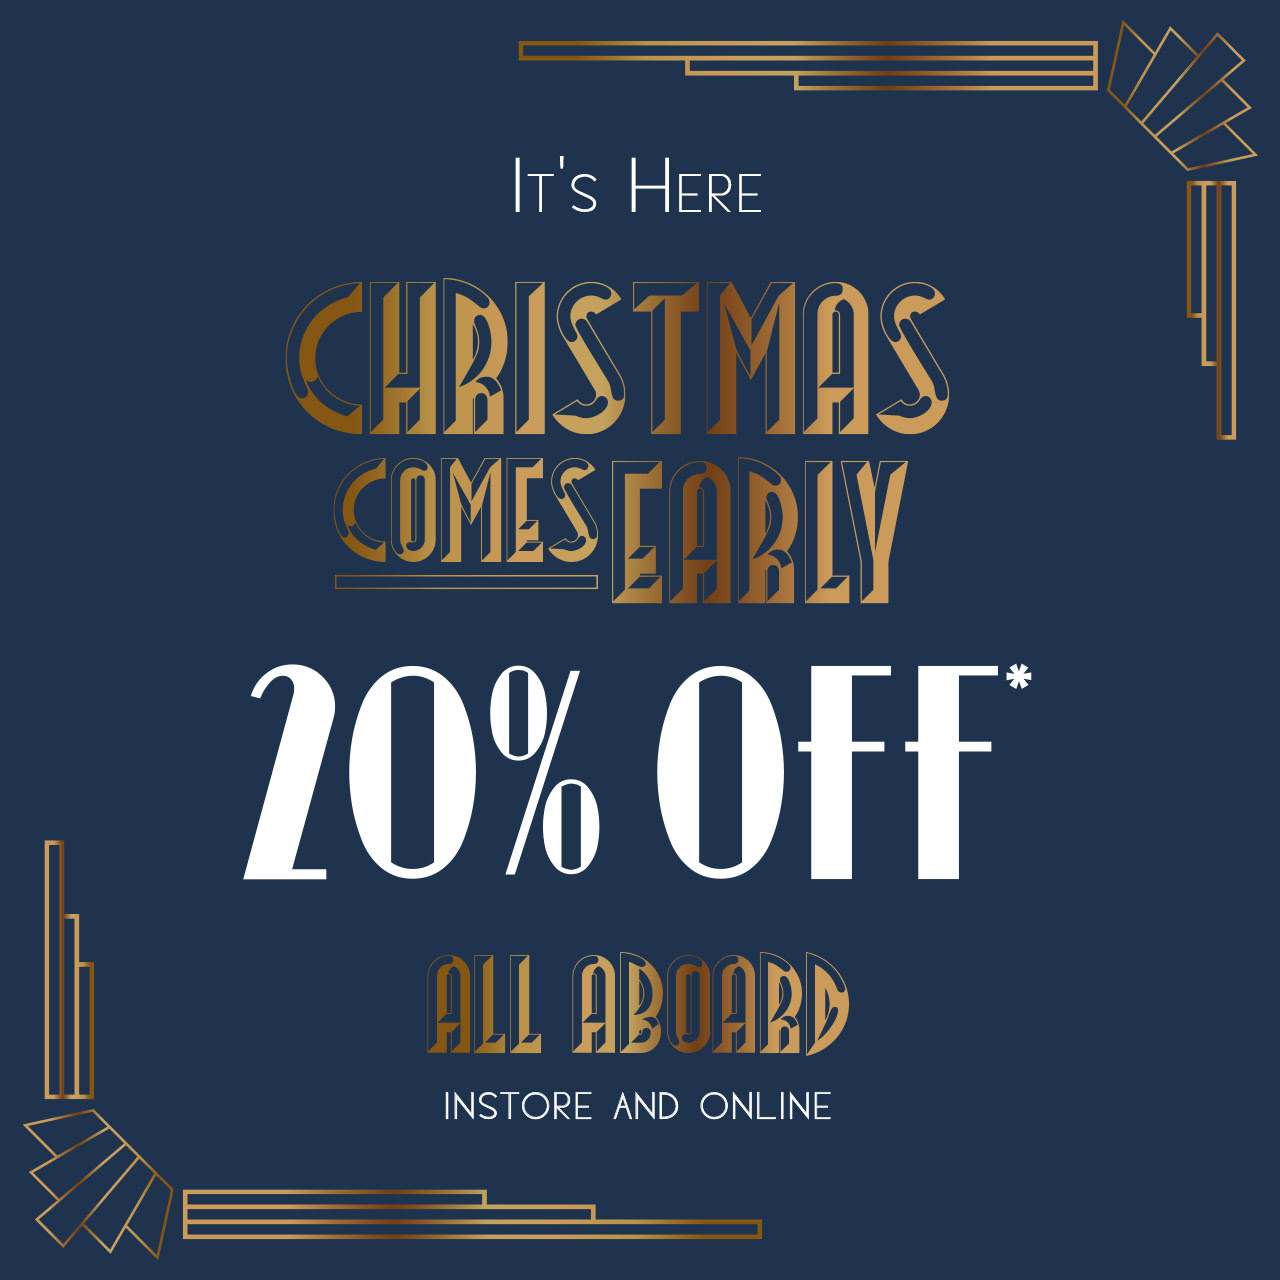 Brown Thomas - Don't miss out, enjoy 20% off almost everything now